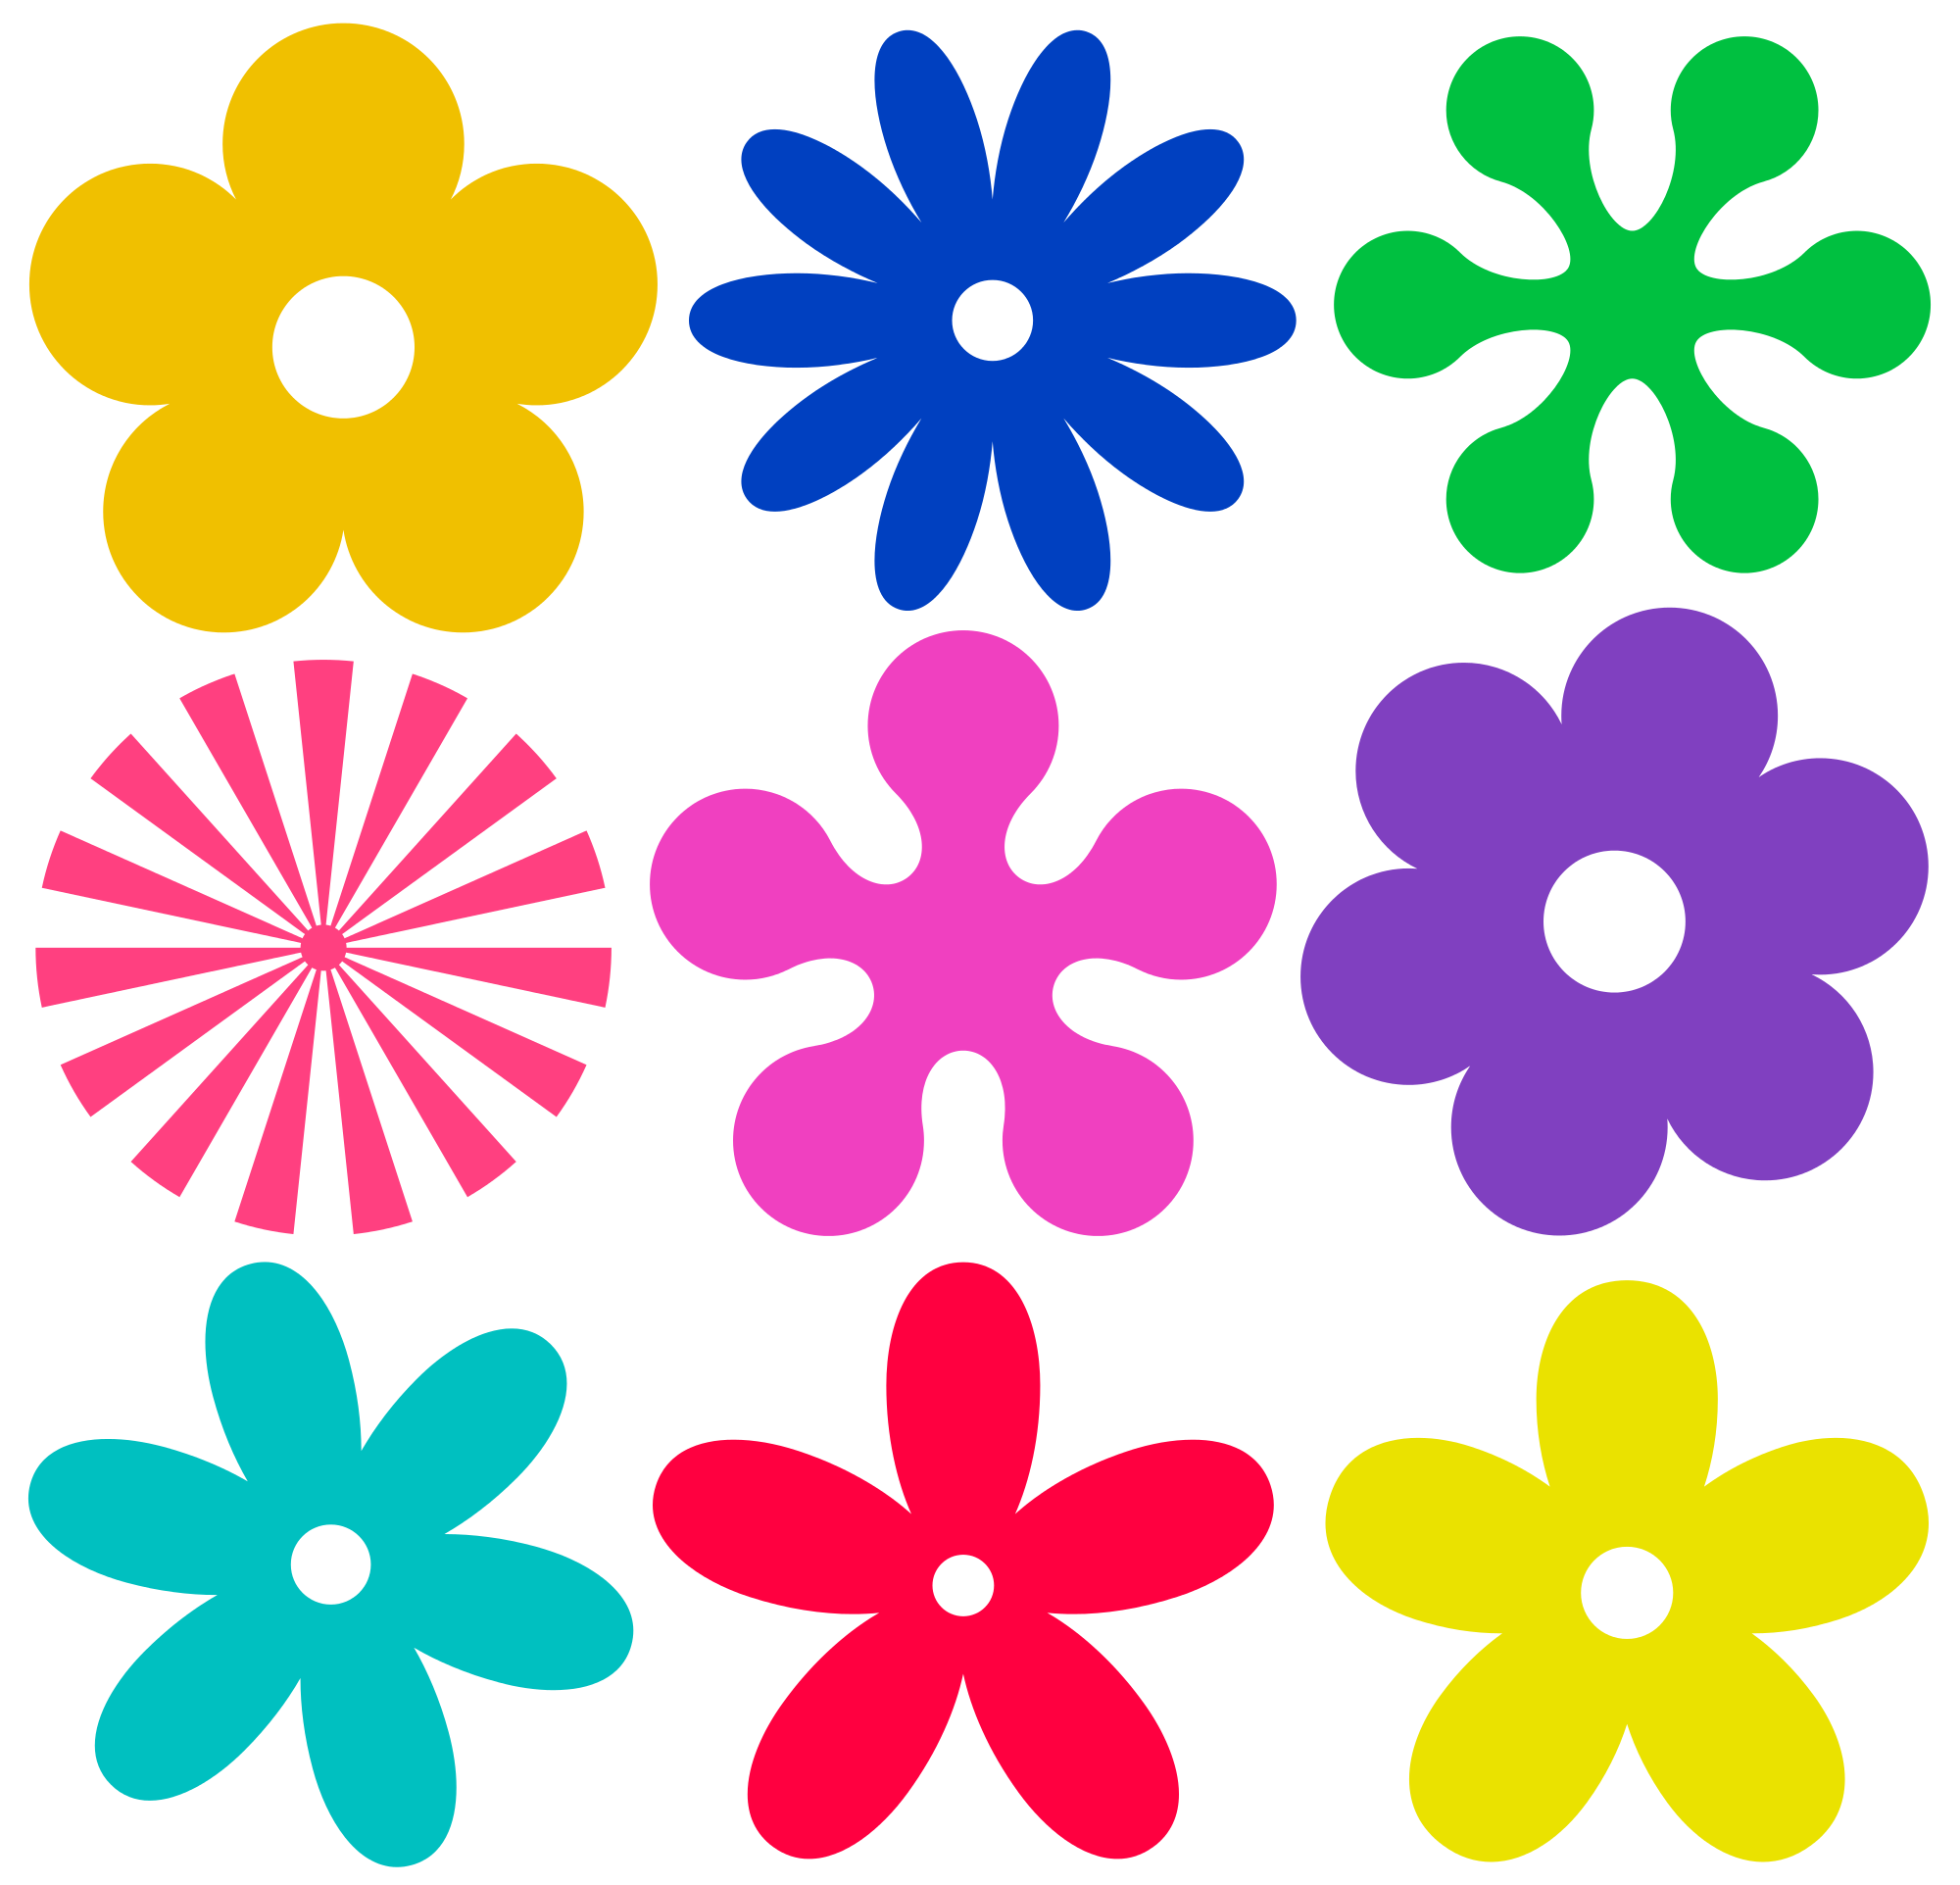 Silhouette ornaments with flowers for cookies png. File retro flower svg